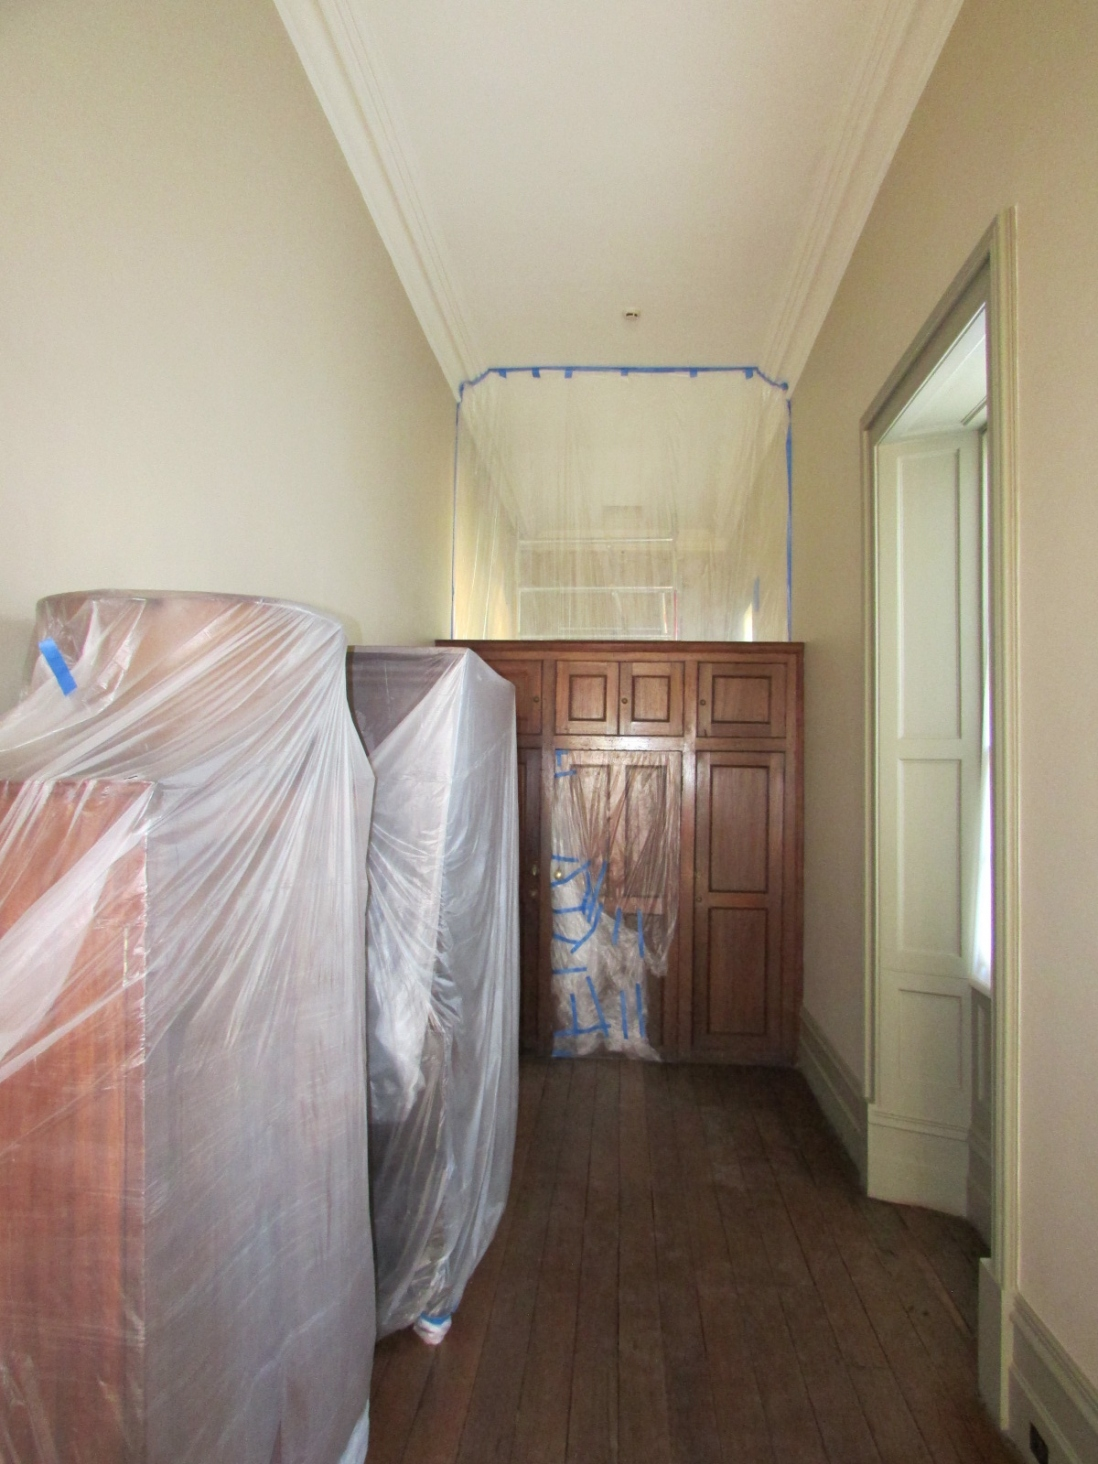 Looking into a narrow room with protective cloths up for repair work.